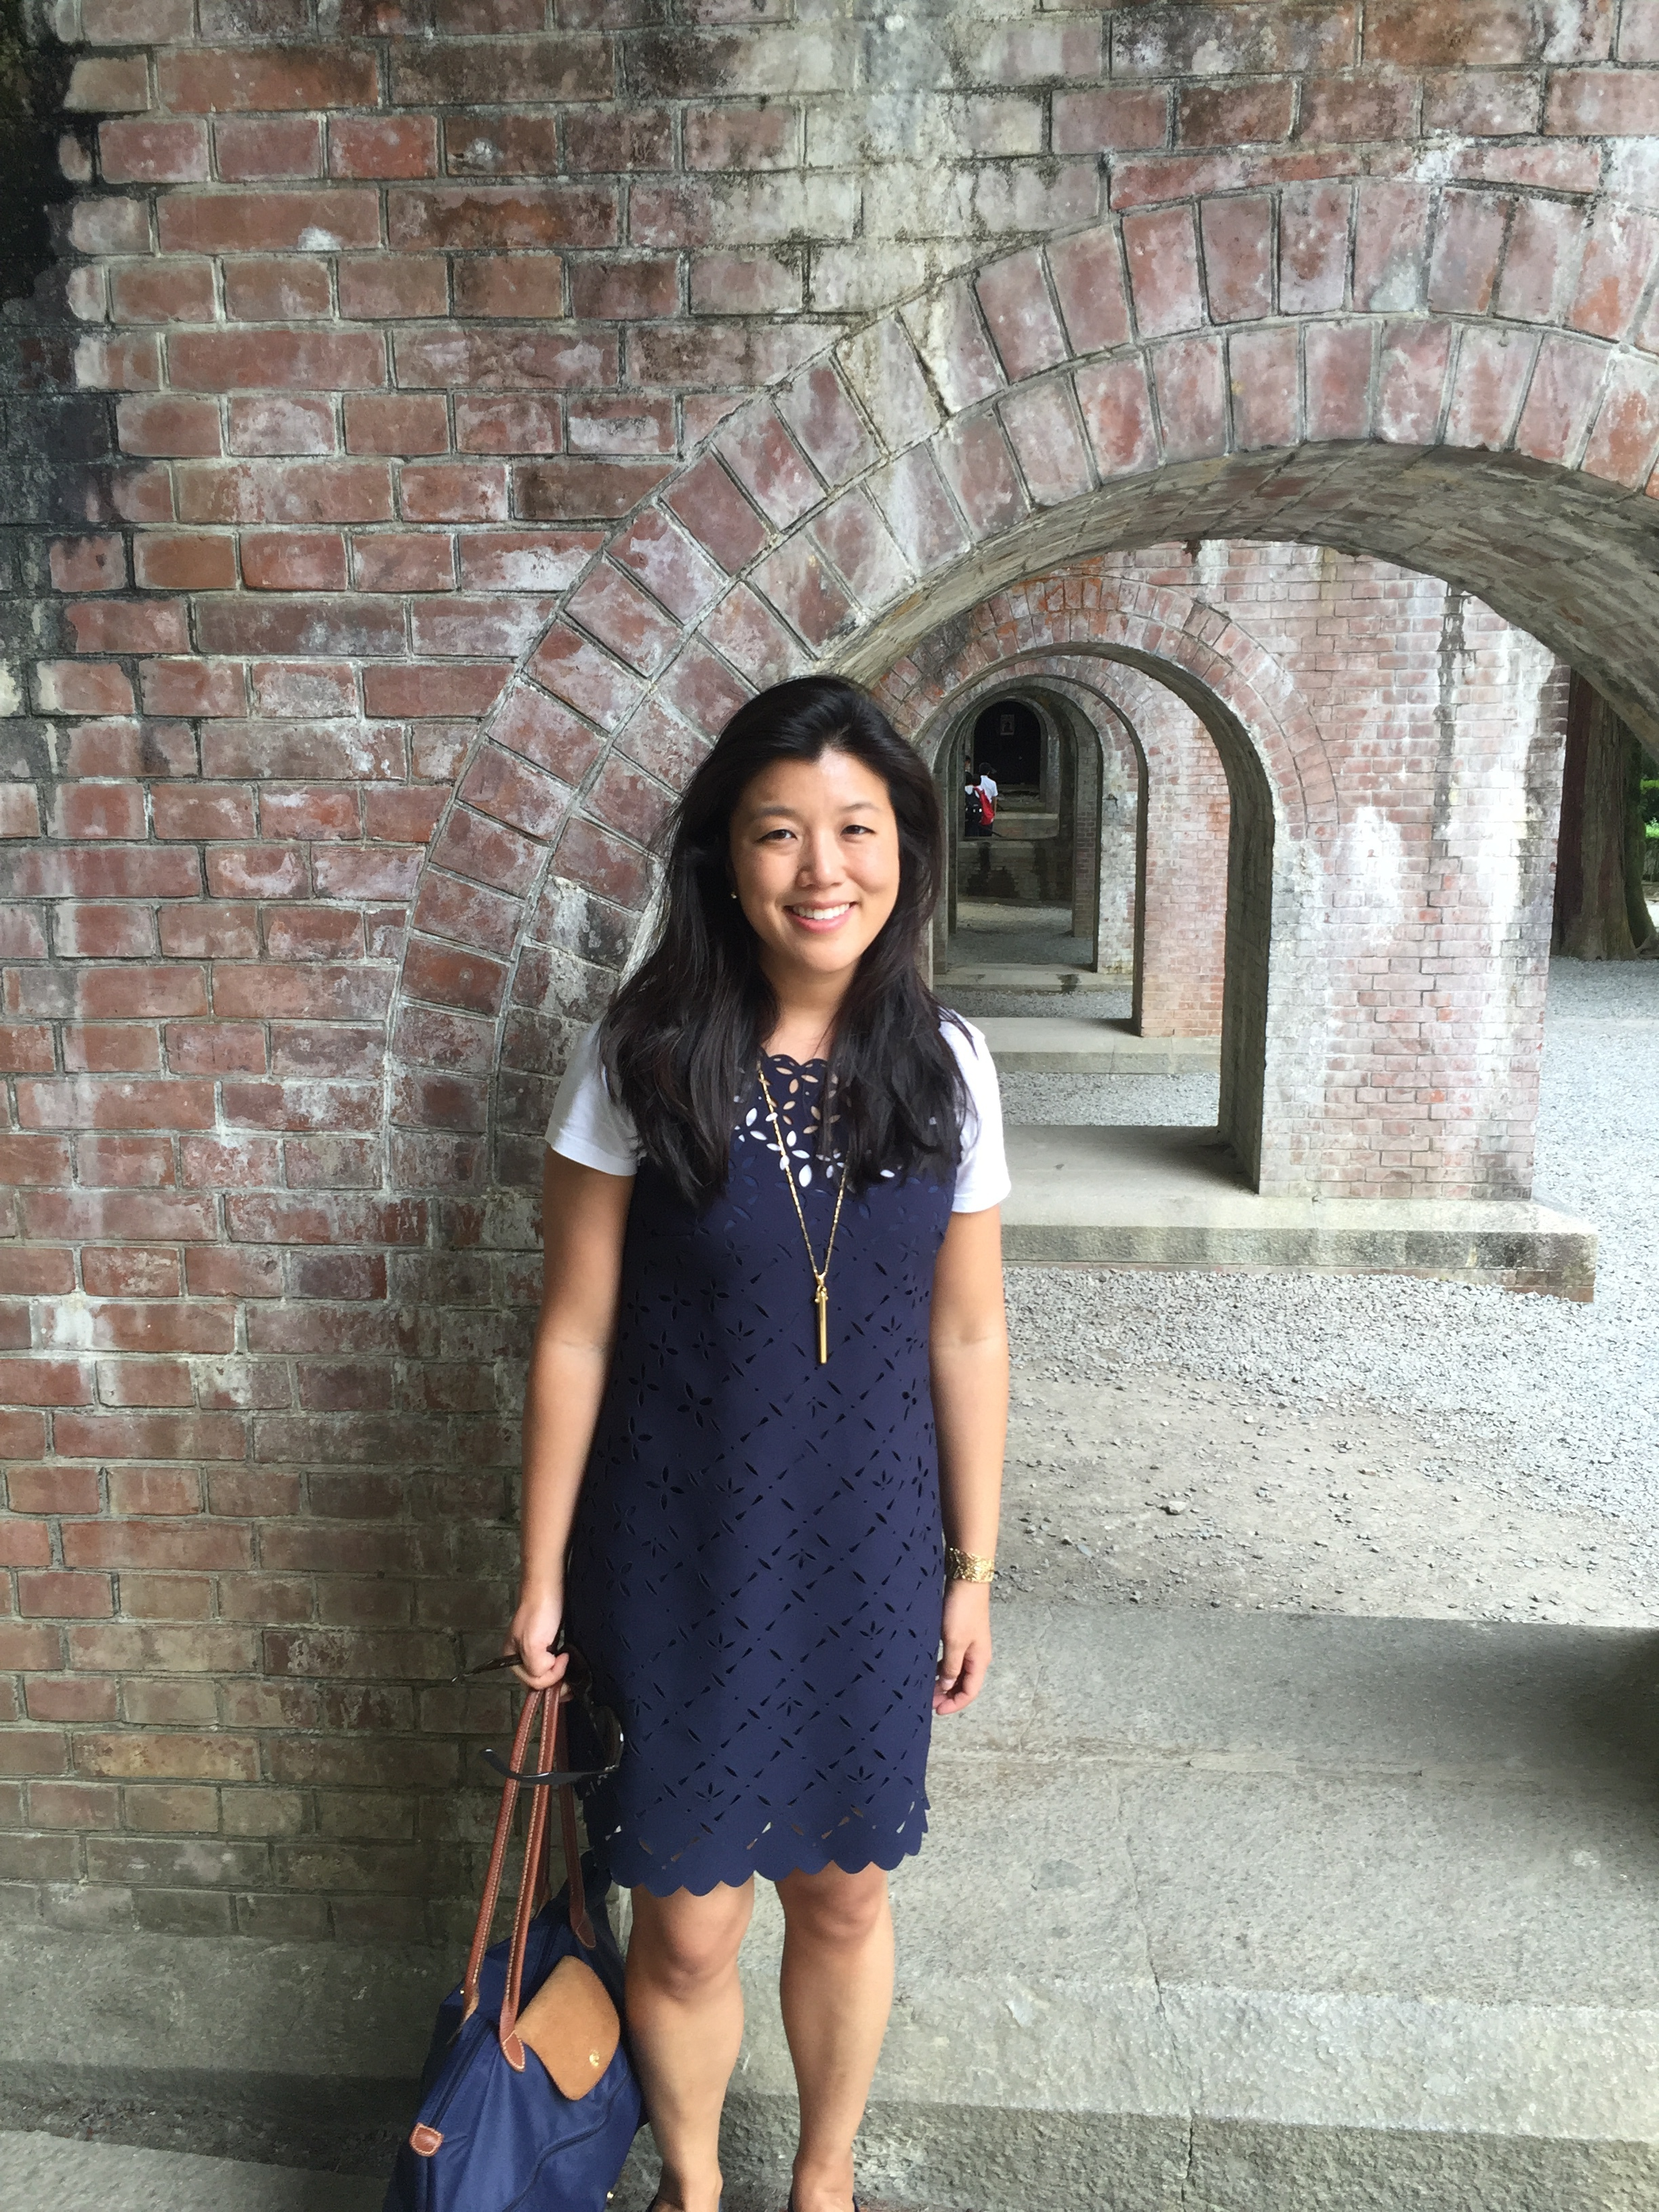 """In Japan this past June. """"This was in Kyoto, at the grounds of Nanzen-ji, a Zen Buddhist temple, by the Roman-style aqueduct. Kyoto is a beautiful, historical city."""""""